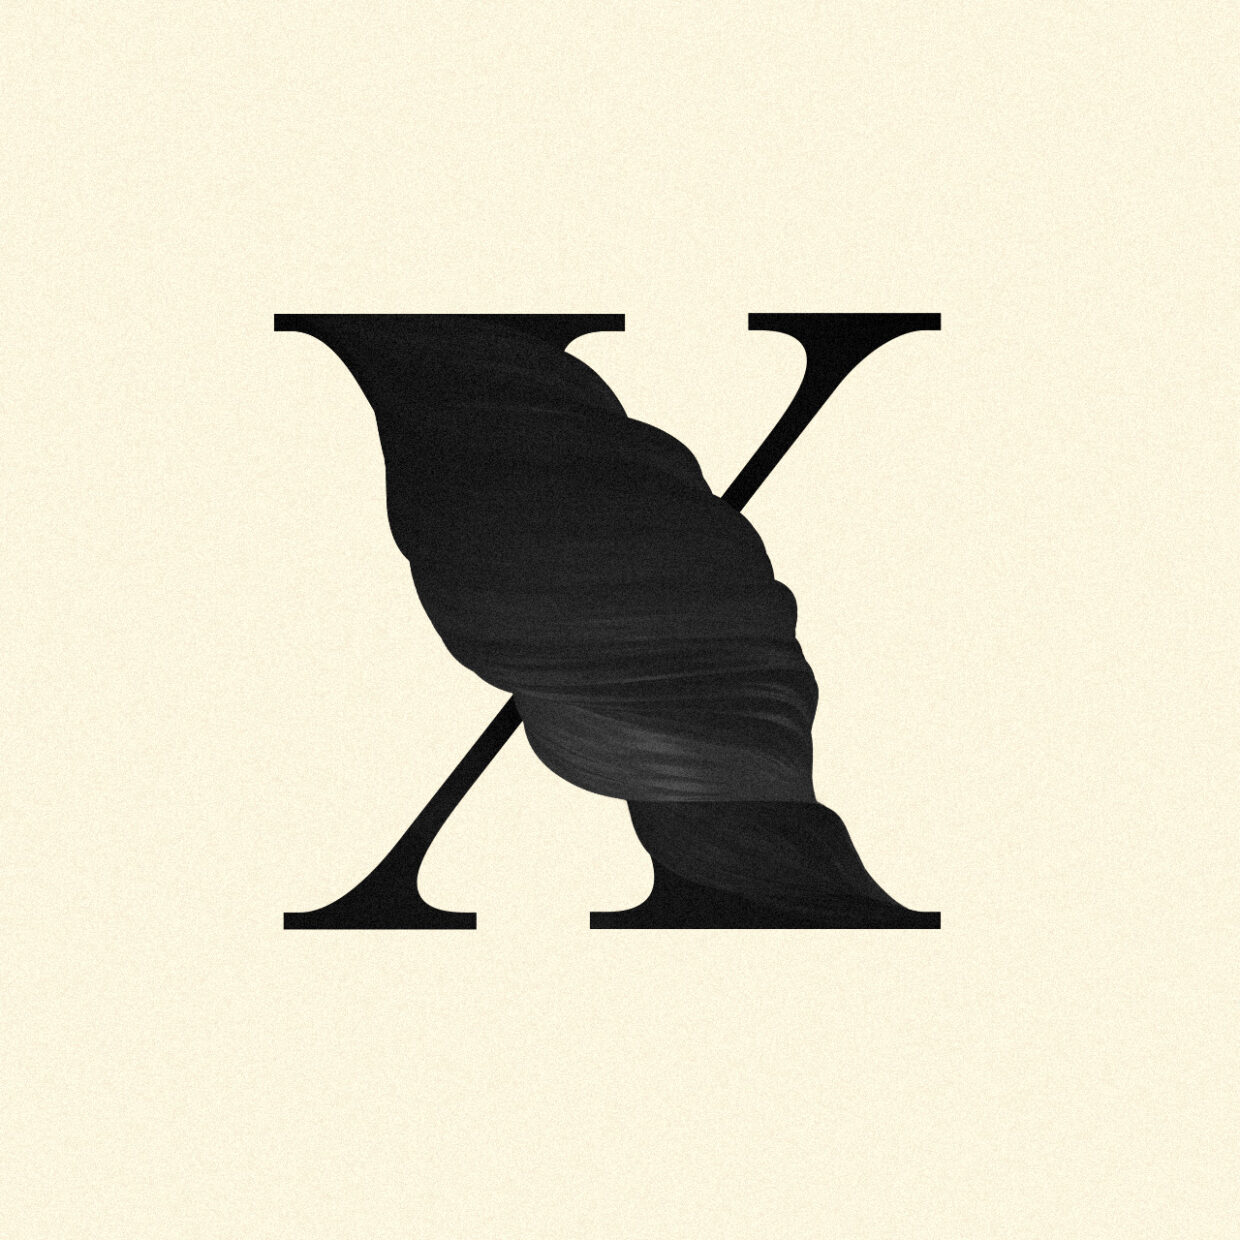 Illustration of an abstract X letter